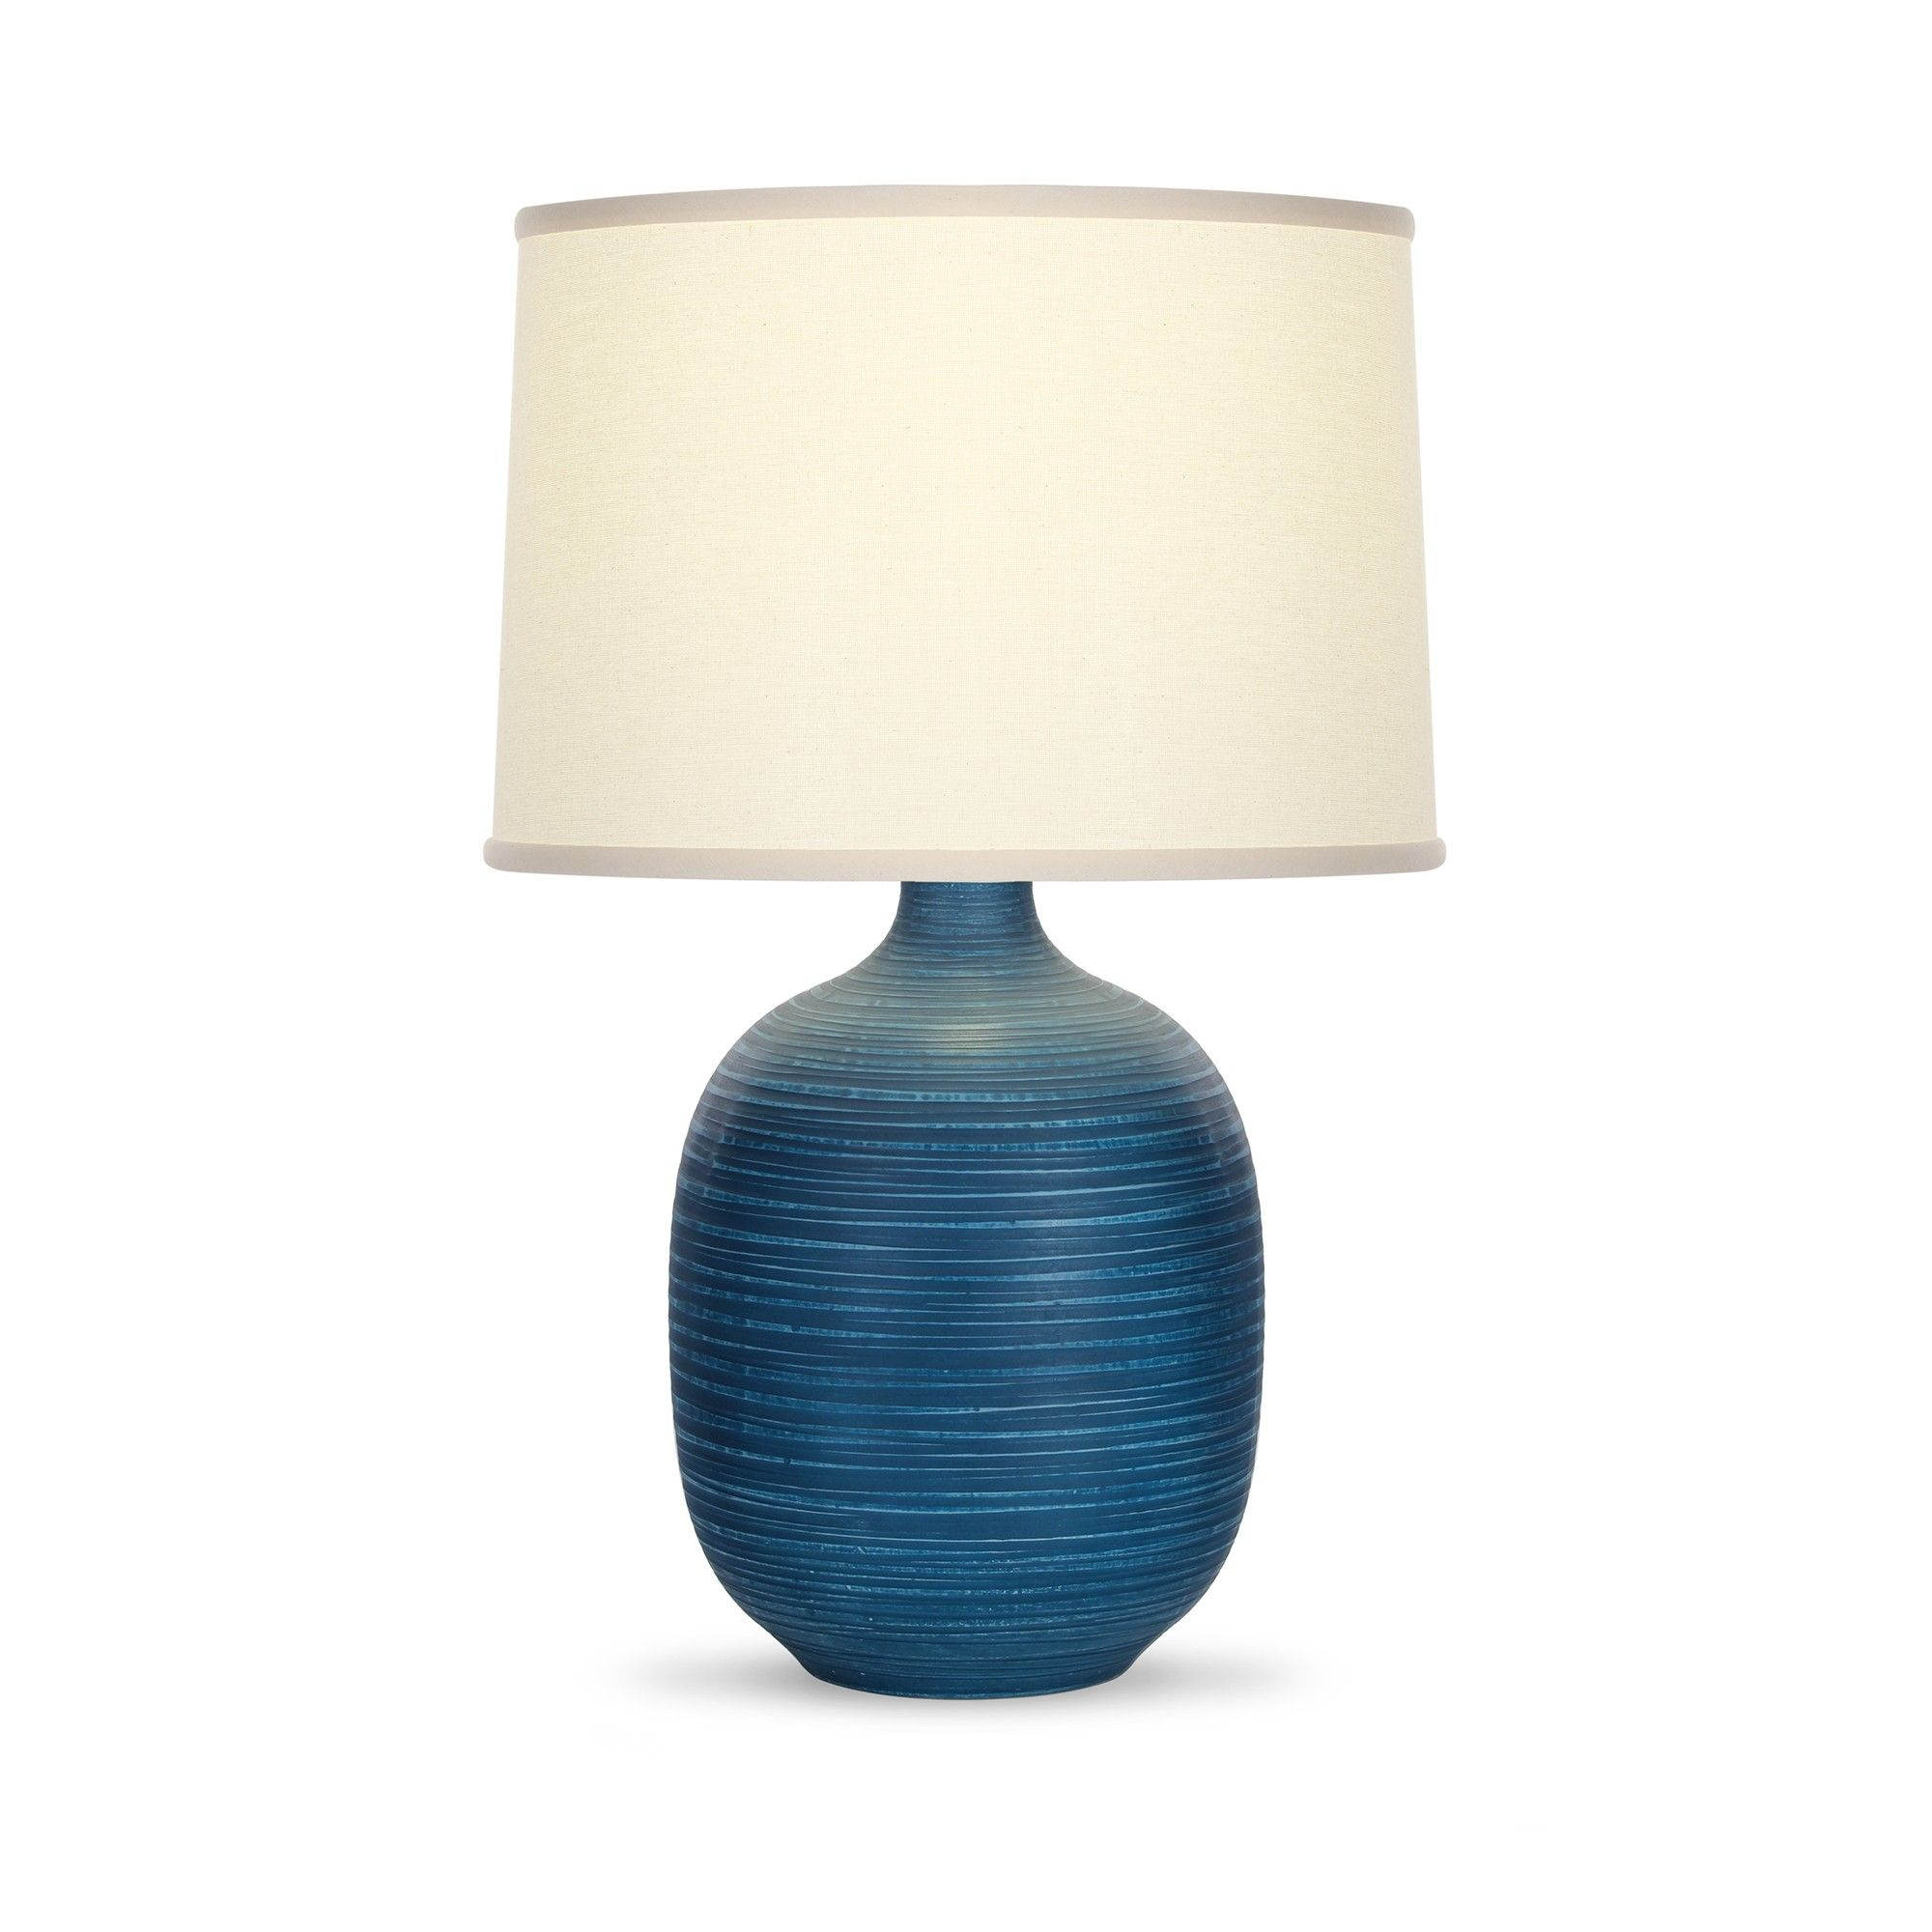 Sayles Table Lamp Blue Ceramic Table Lamps Table Lamp Lamp